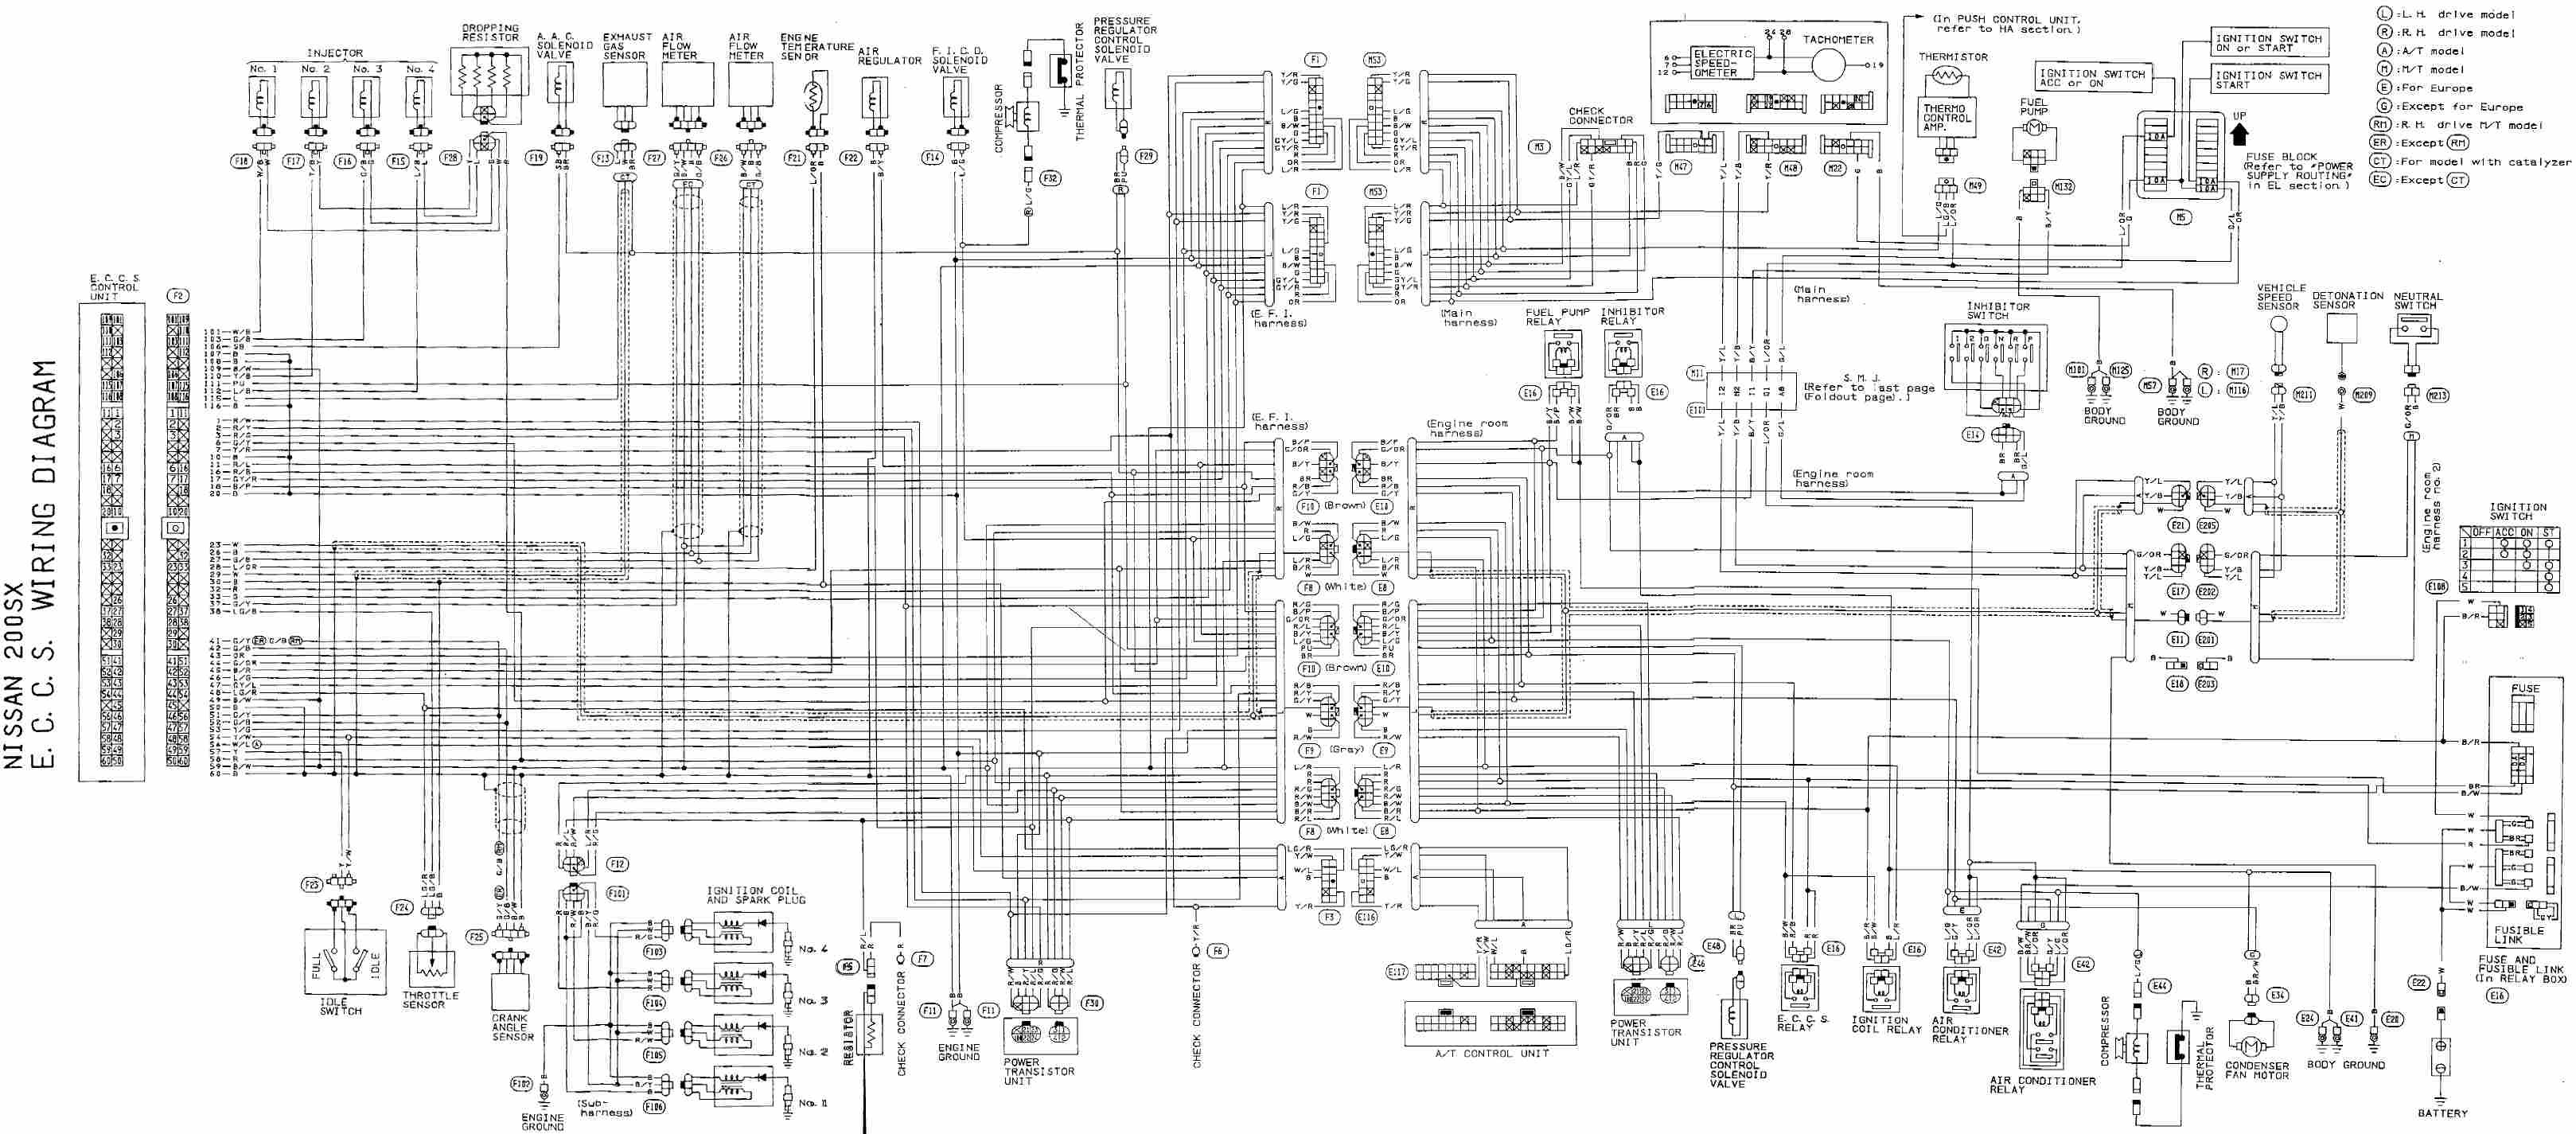 Ac Diagram Auto Electrical Wiring Diagrams Collision Body Repair Manual Nissan Note Of Ac Diagram Auto